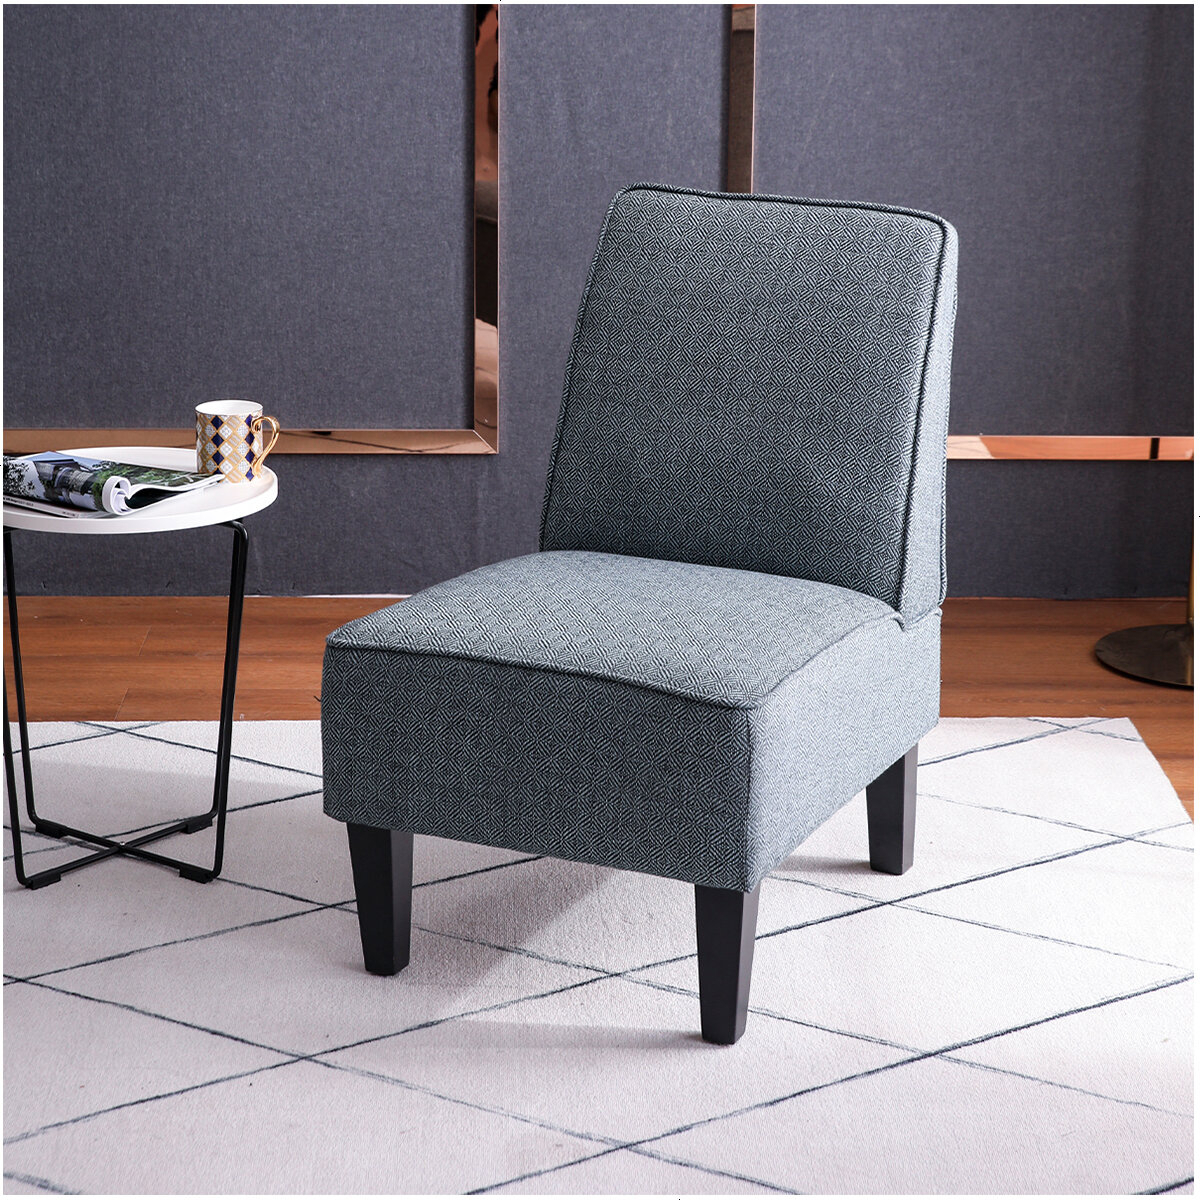 Armless Upholstered Slipper Chair Throughout Armless Upholstered Slipper Chairs (View 2 of 15)